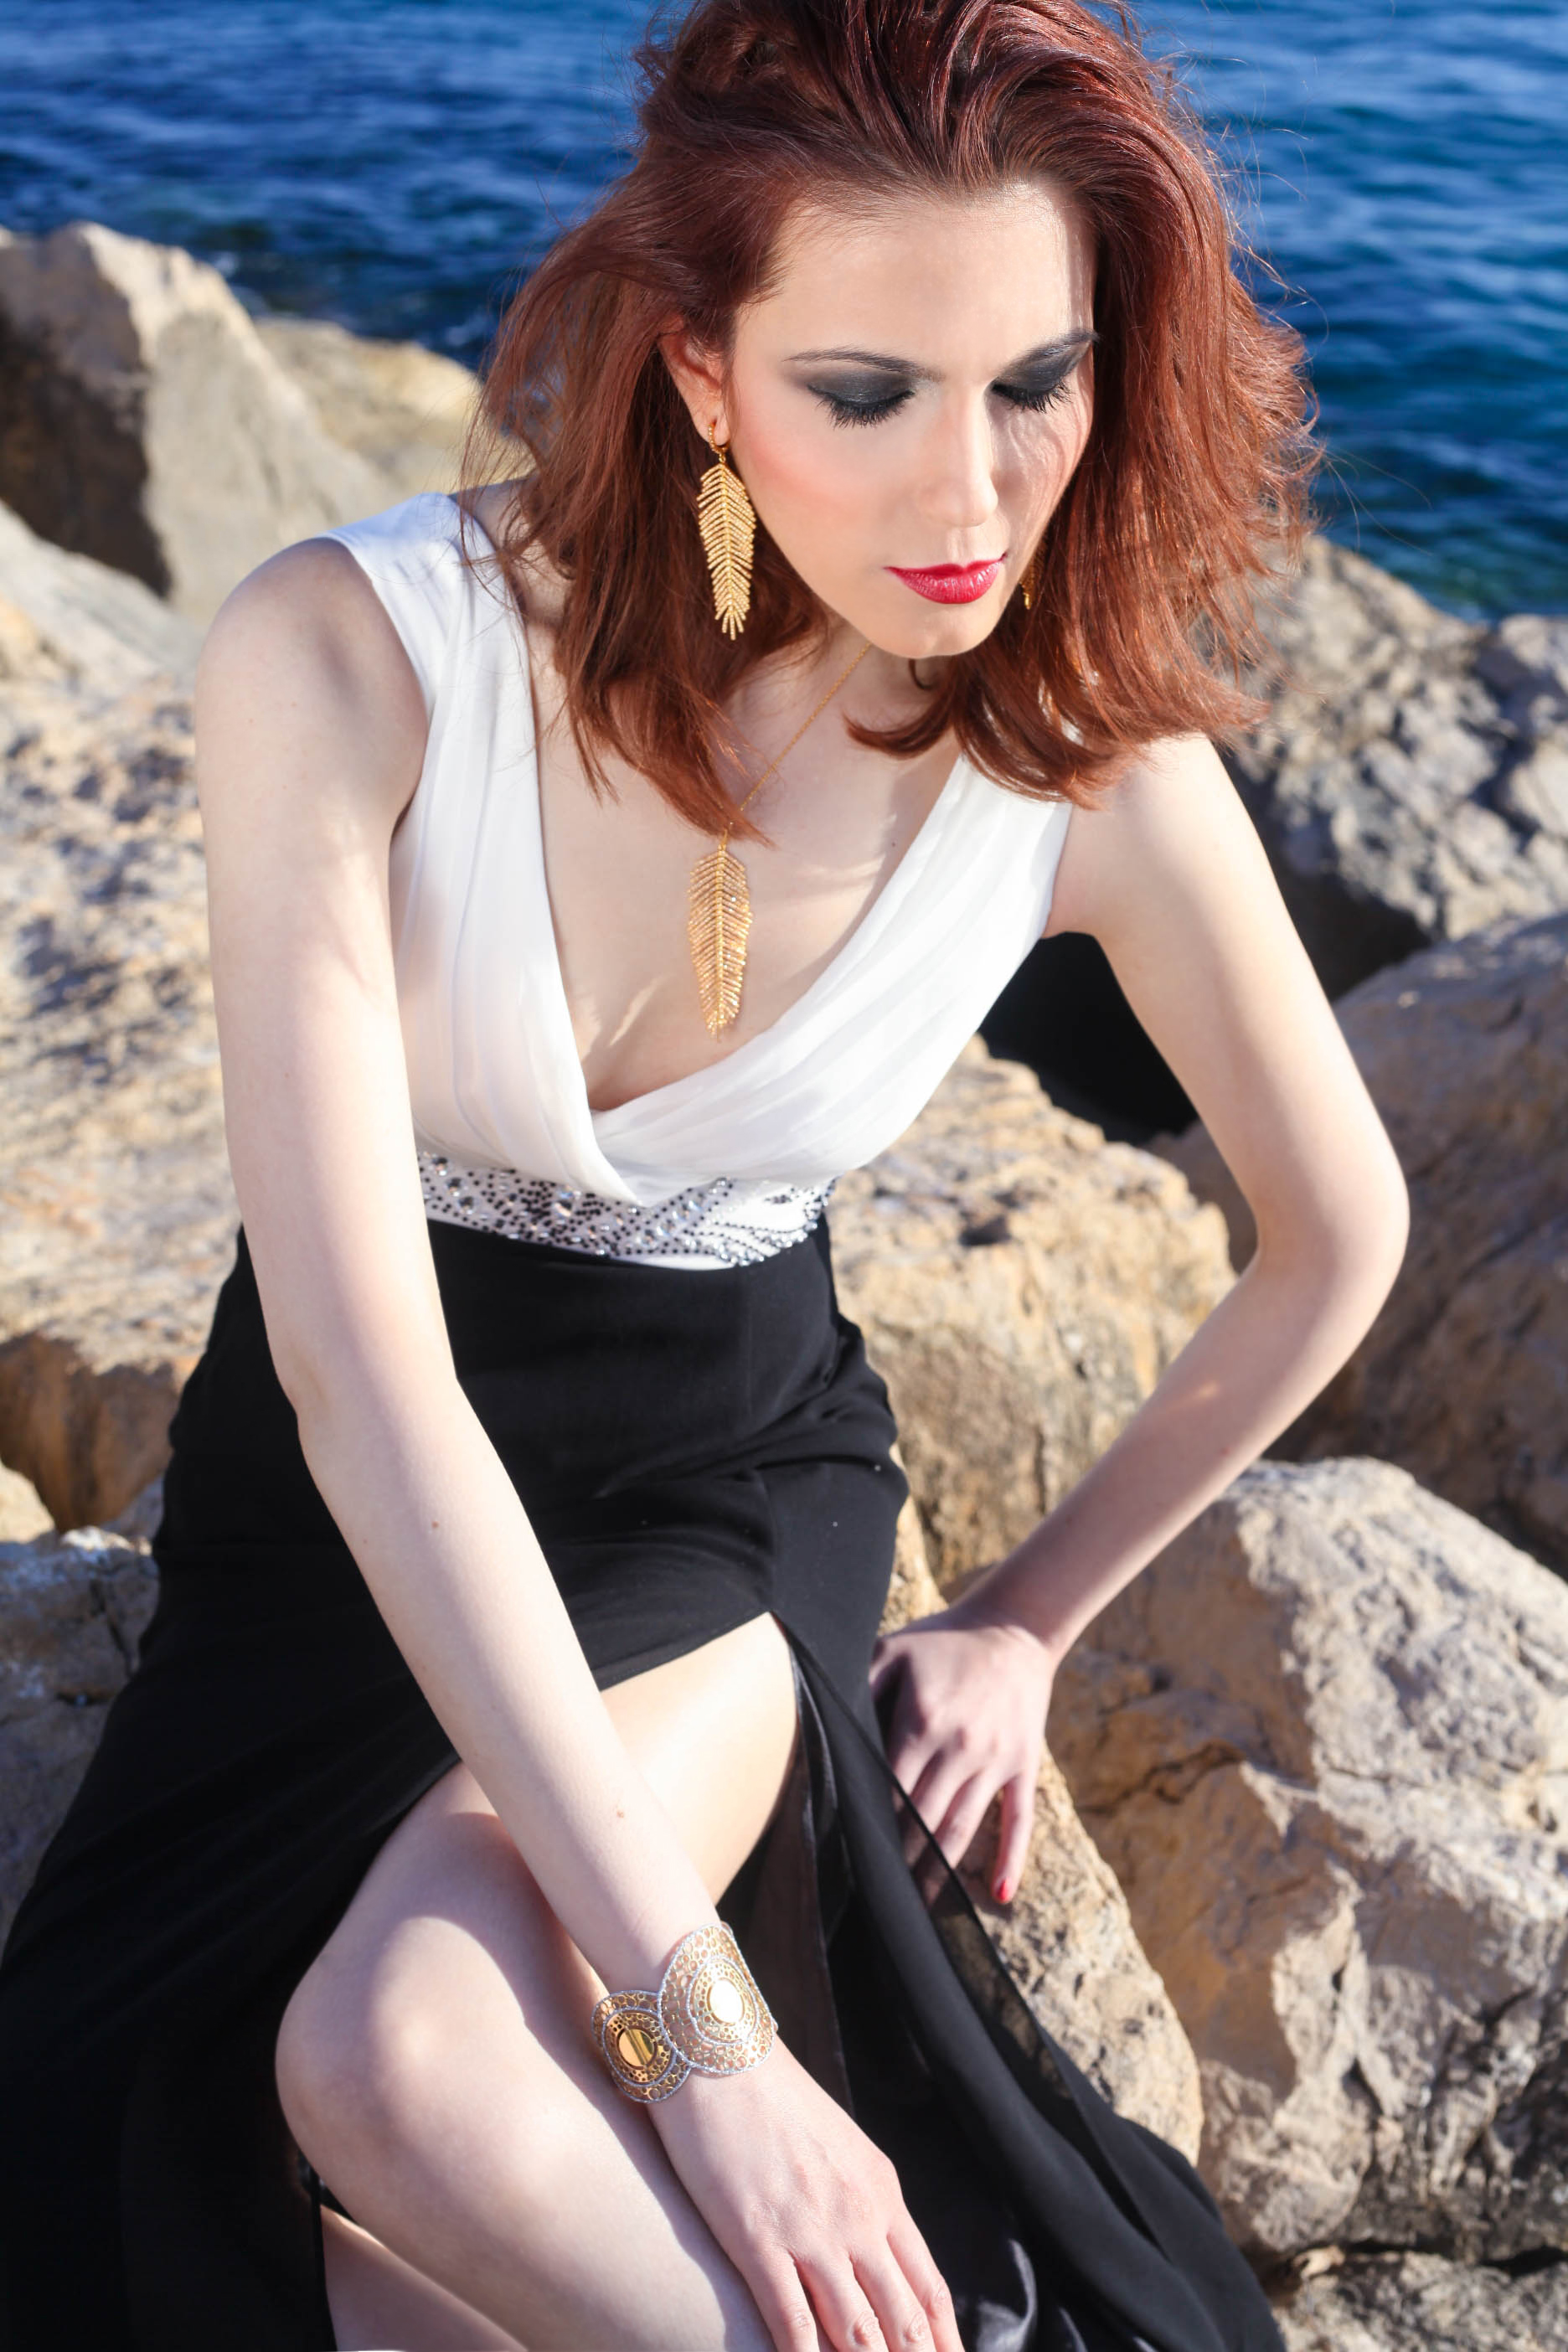 Cannes Promenade Photo Shoot... Jewellery 1